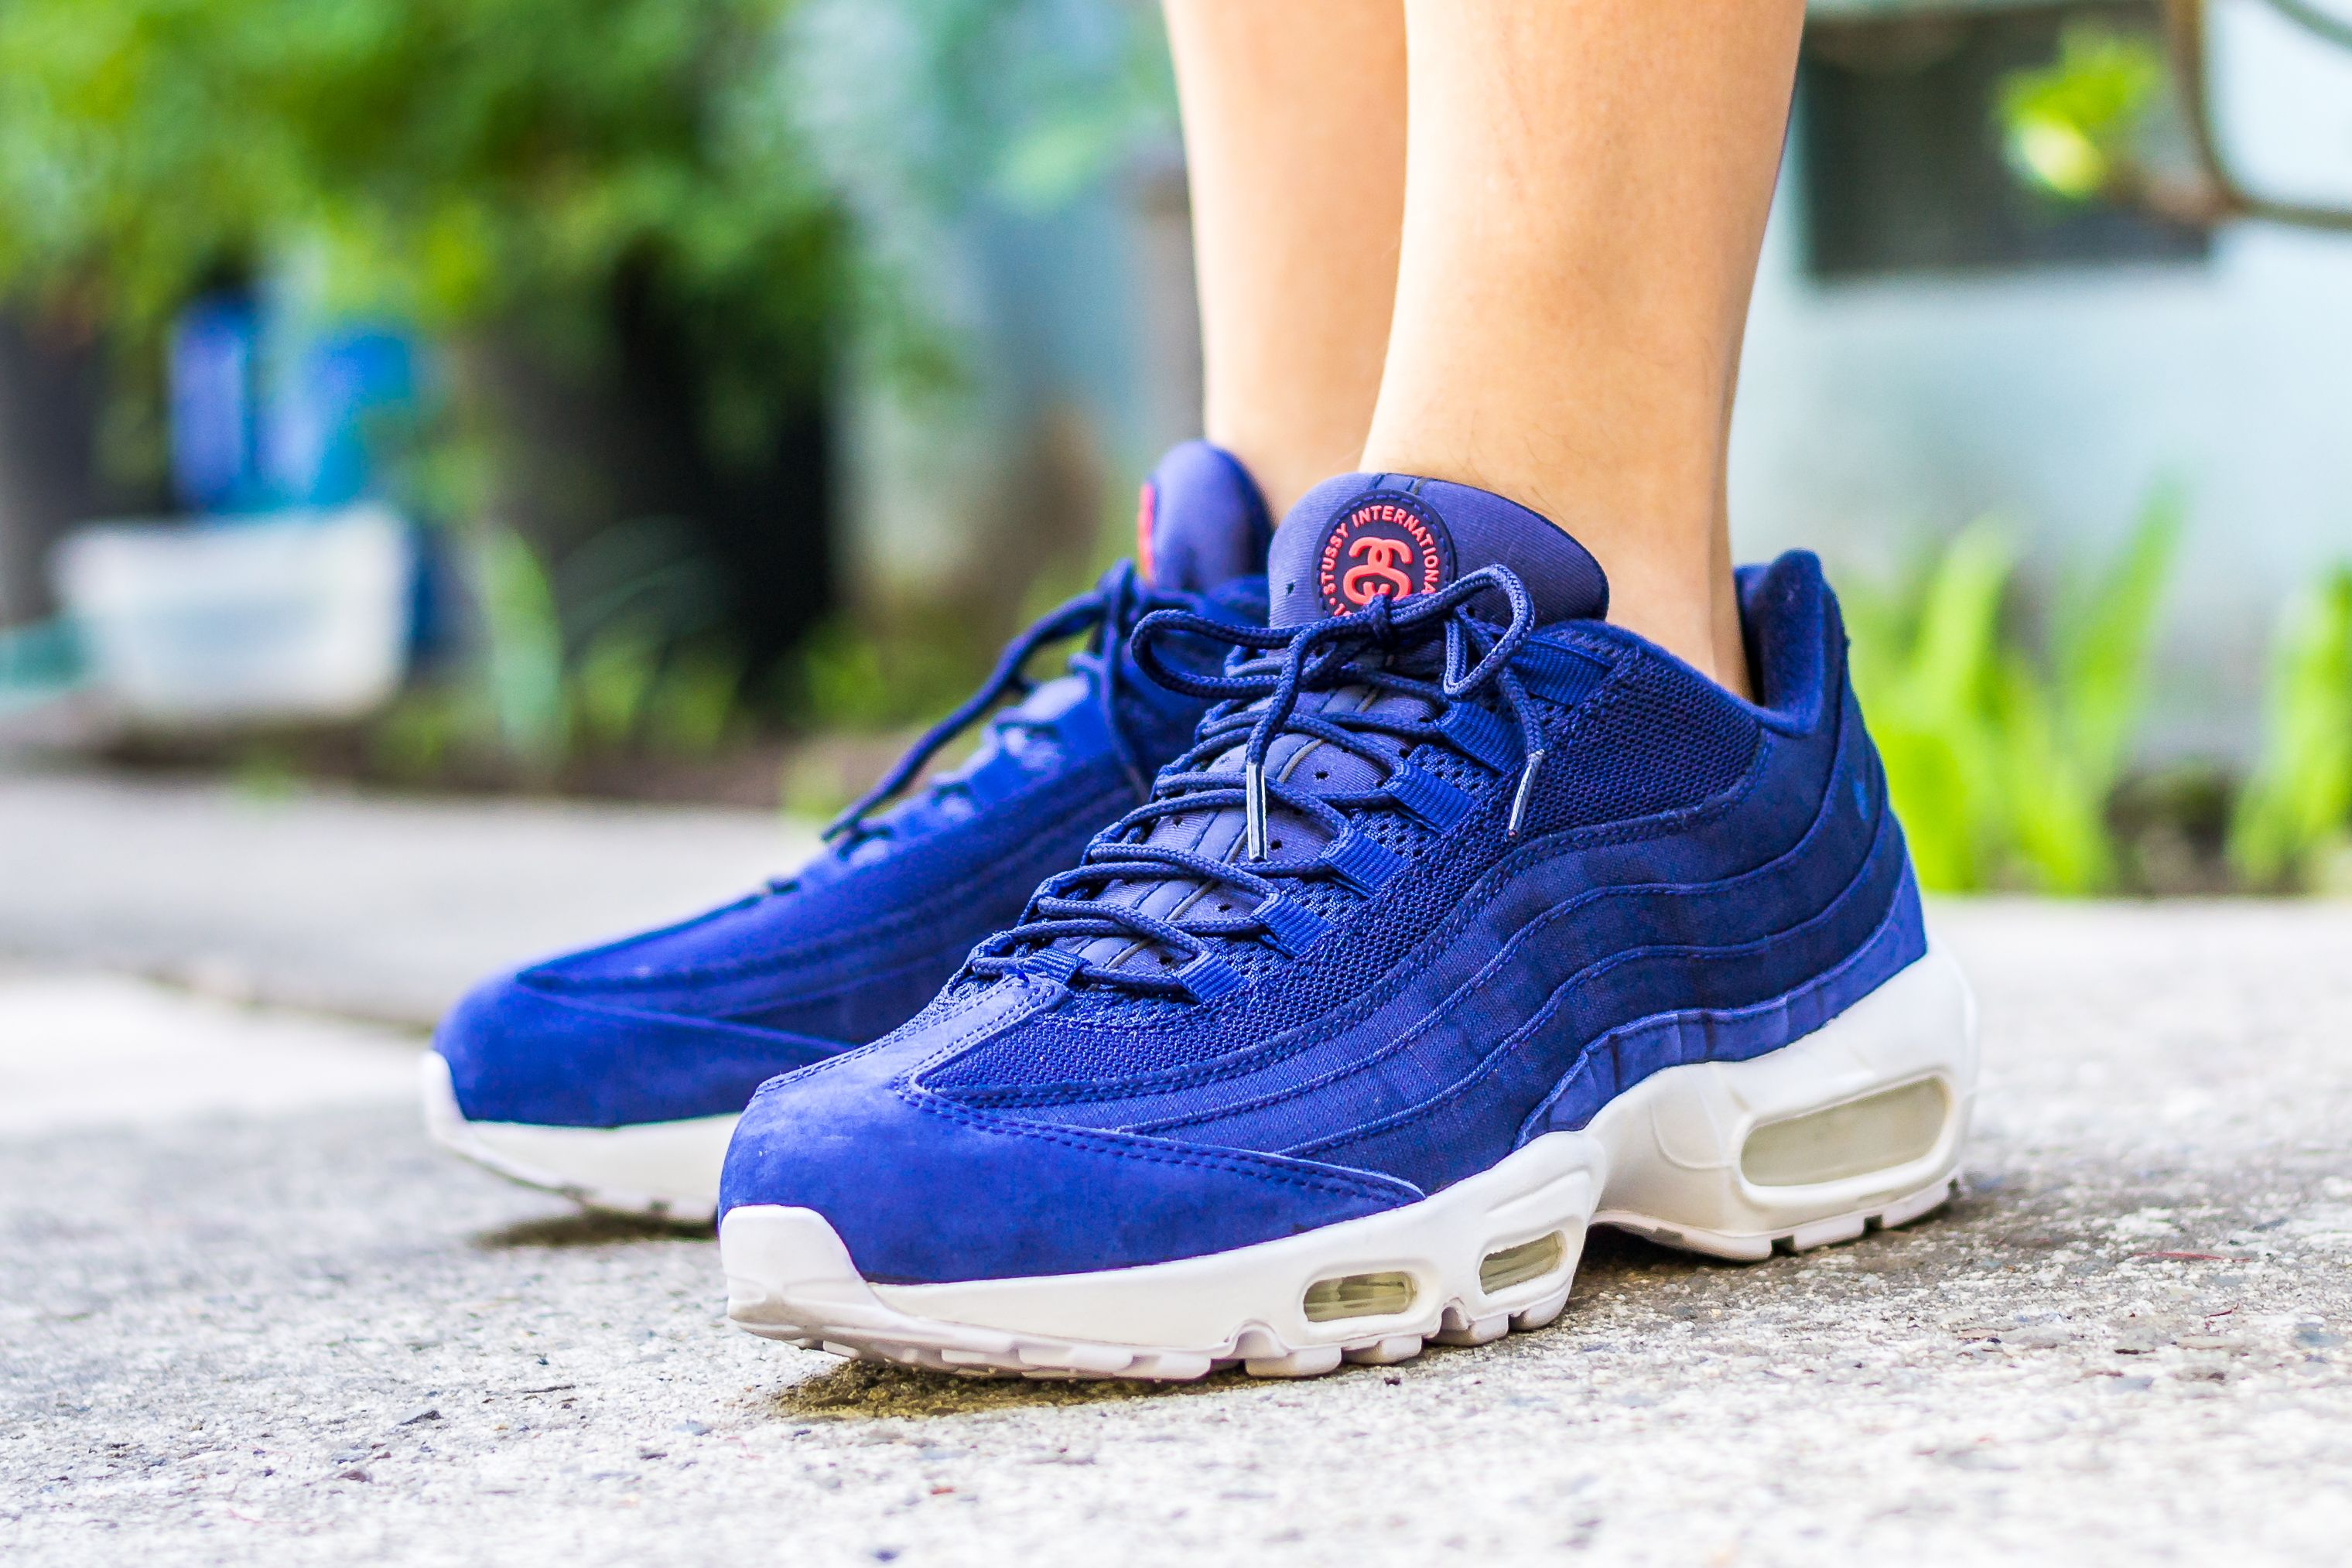 Click to see my video review of the Nike Air Max 95 Stussy Loyal Blue and